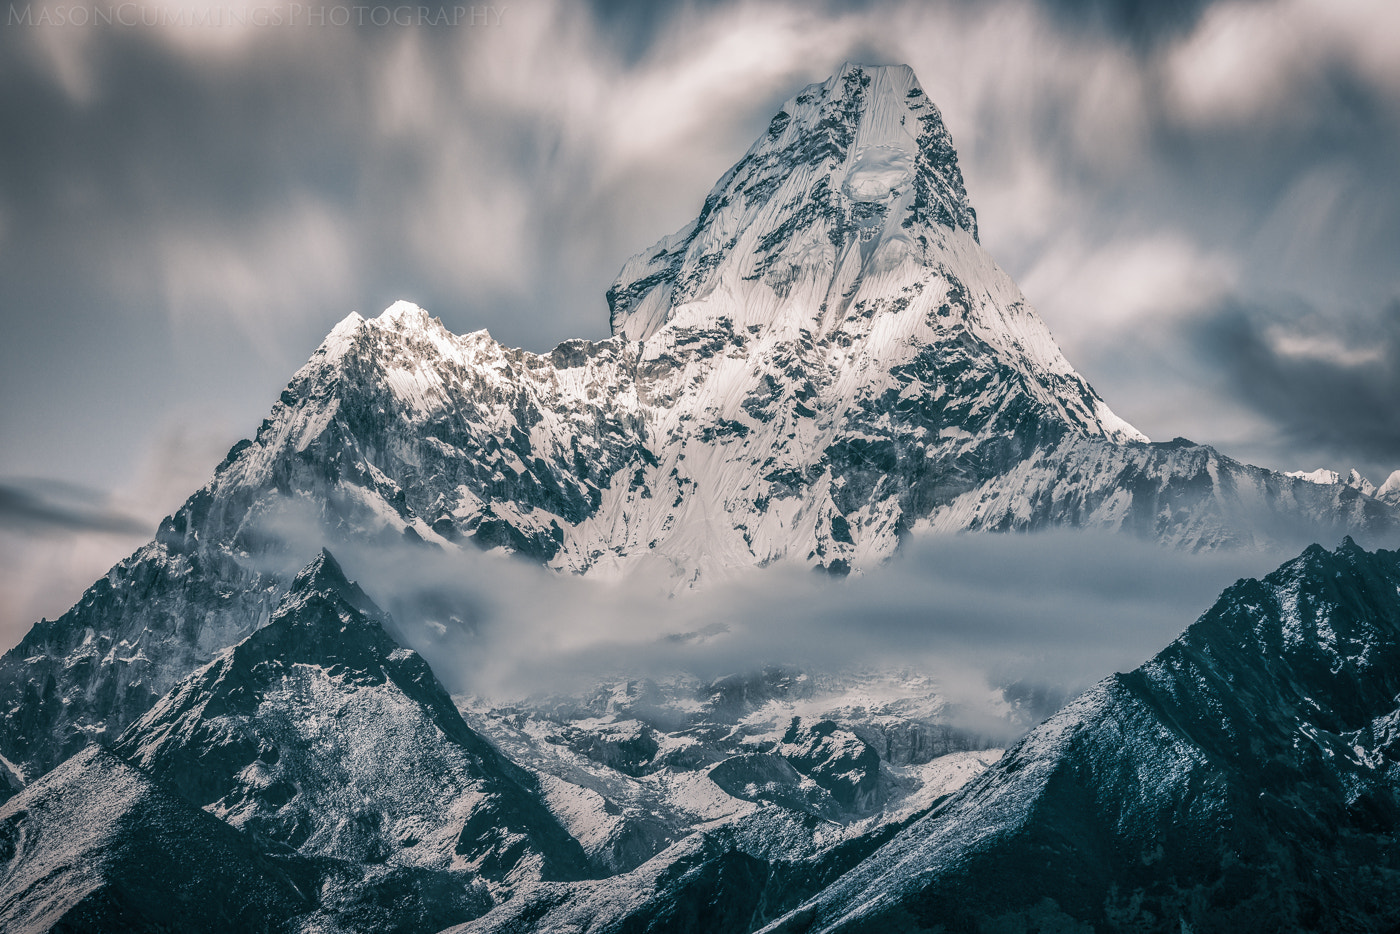 Photograph 84 Seconds Over Ama Dablam by Mason Cummings on 500px